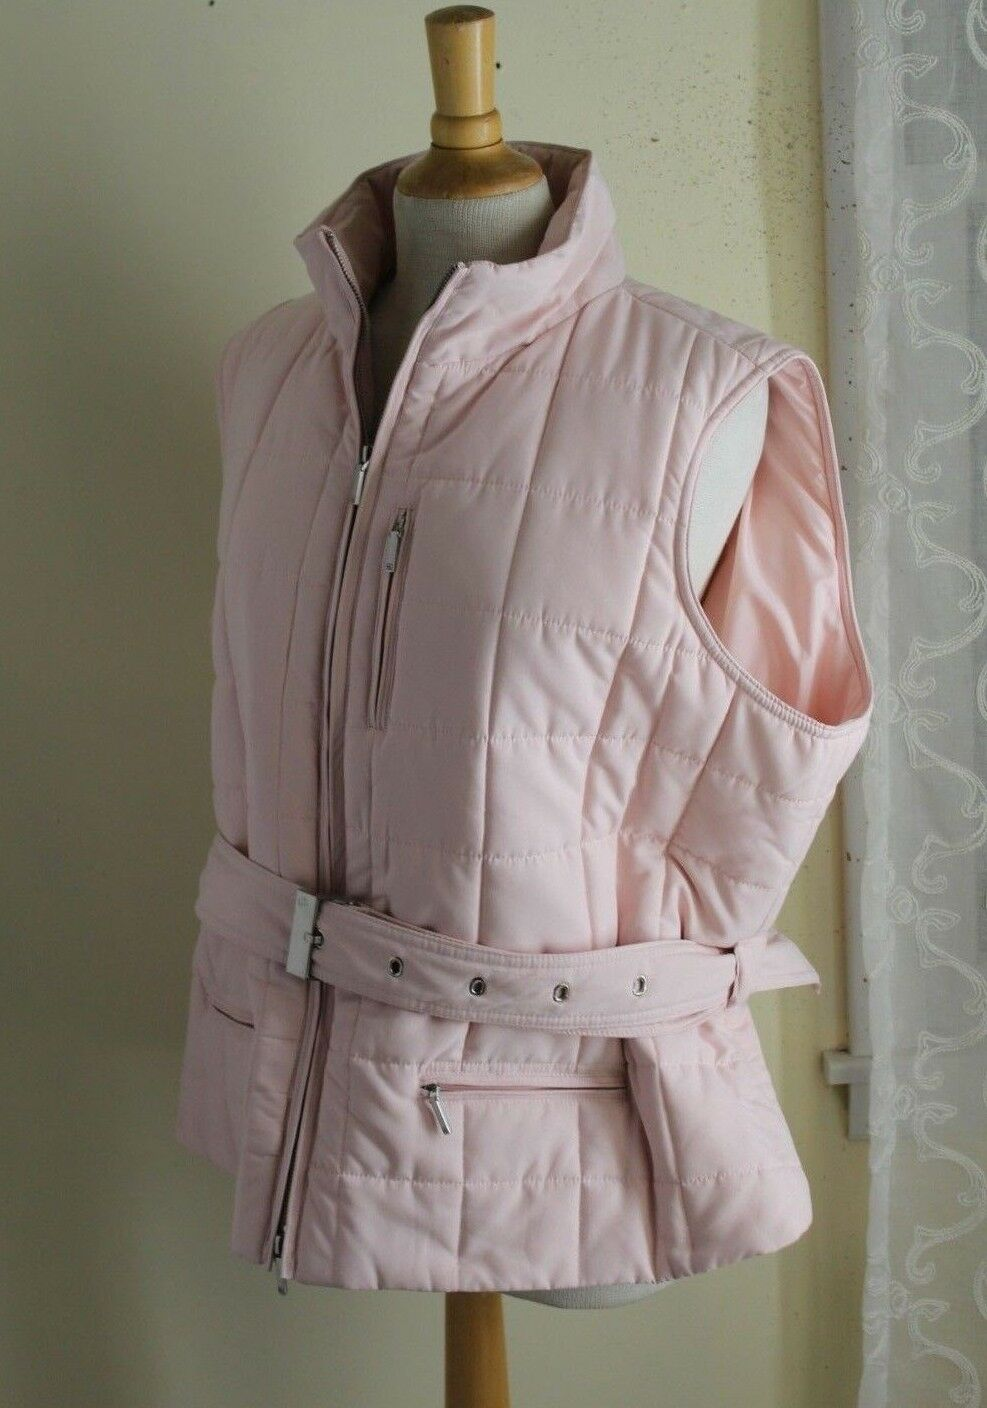 Ralph Lauren -Sz 2X Rich Powder Pink Quilted Vest - Medium-Weight -Mint